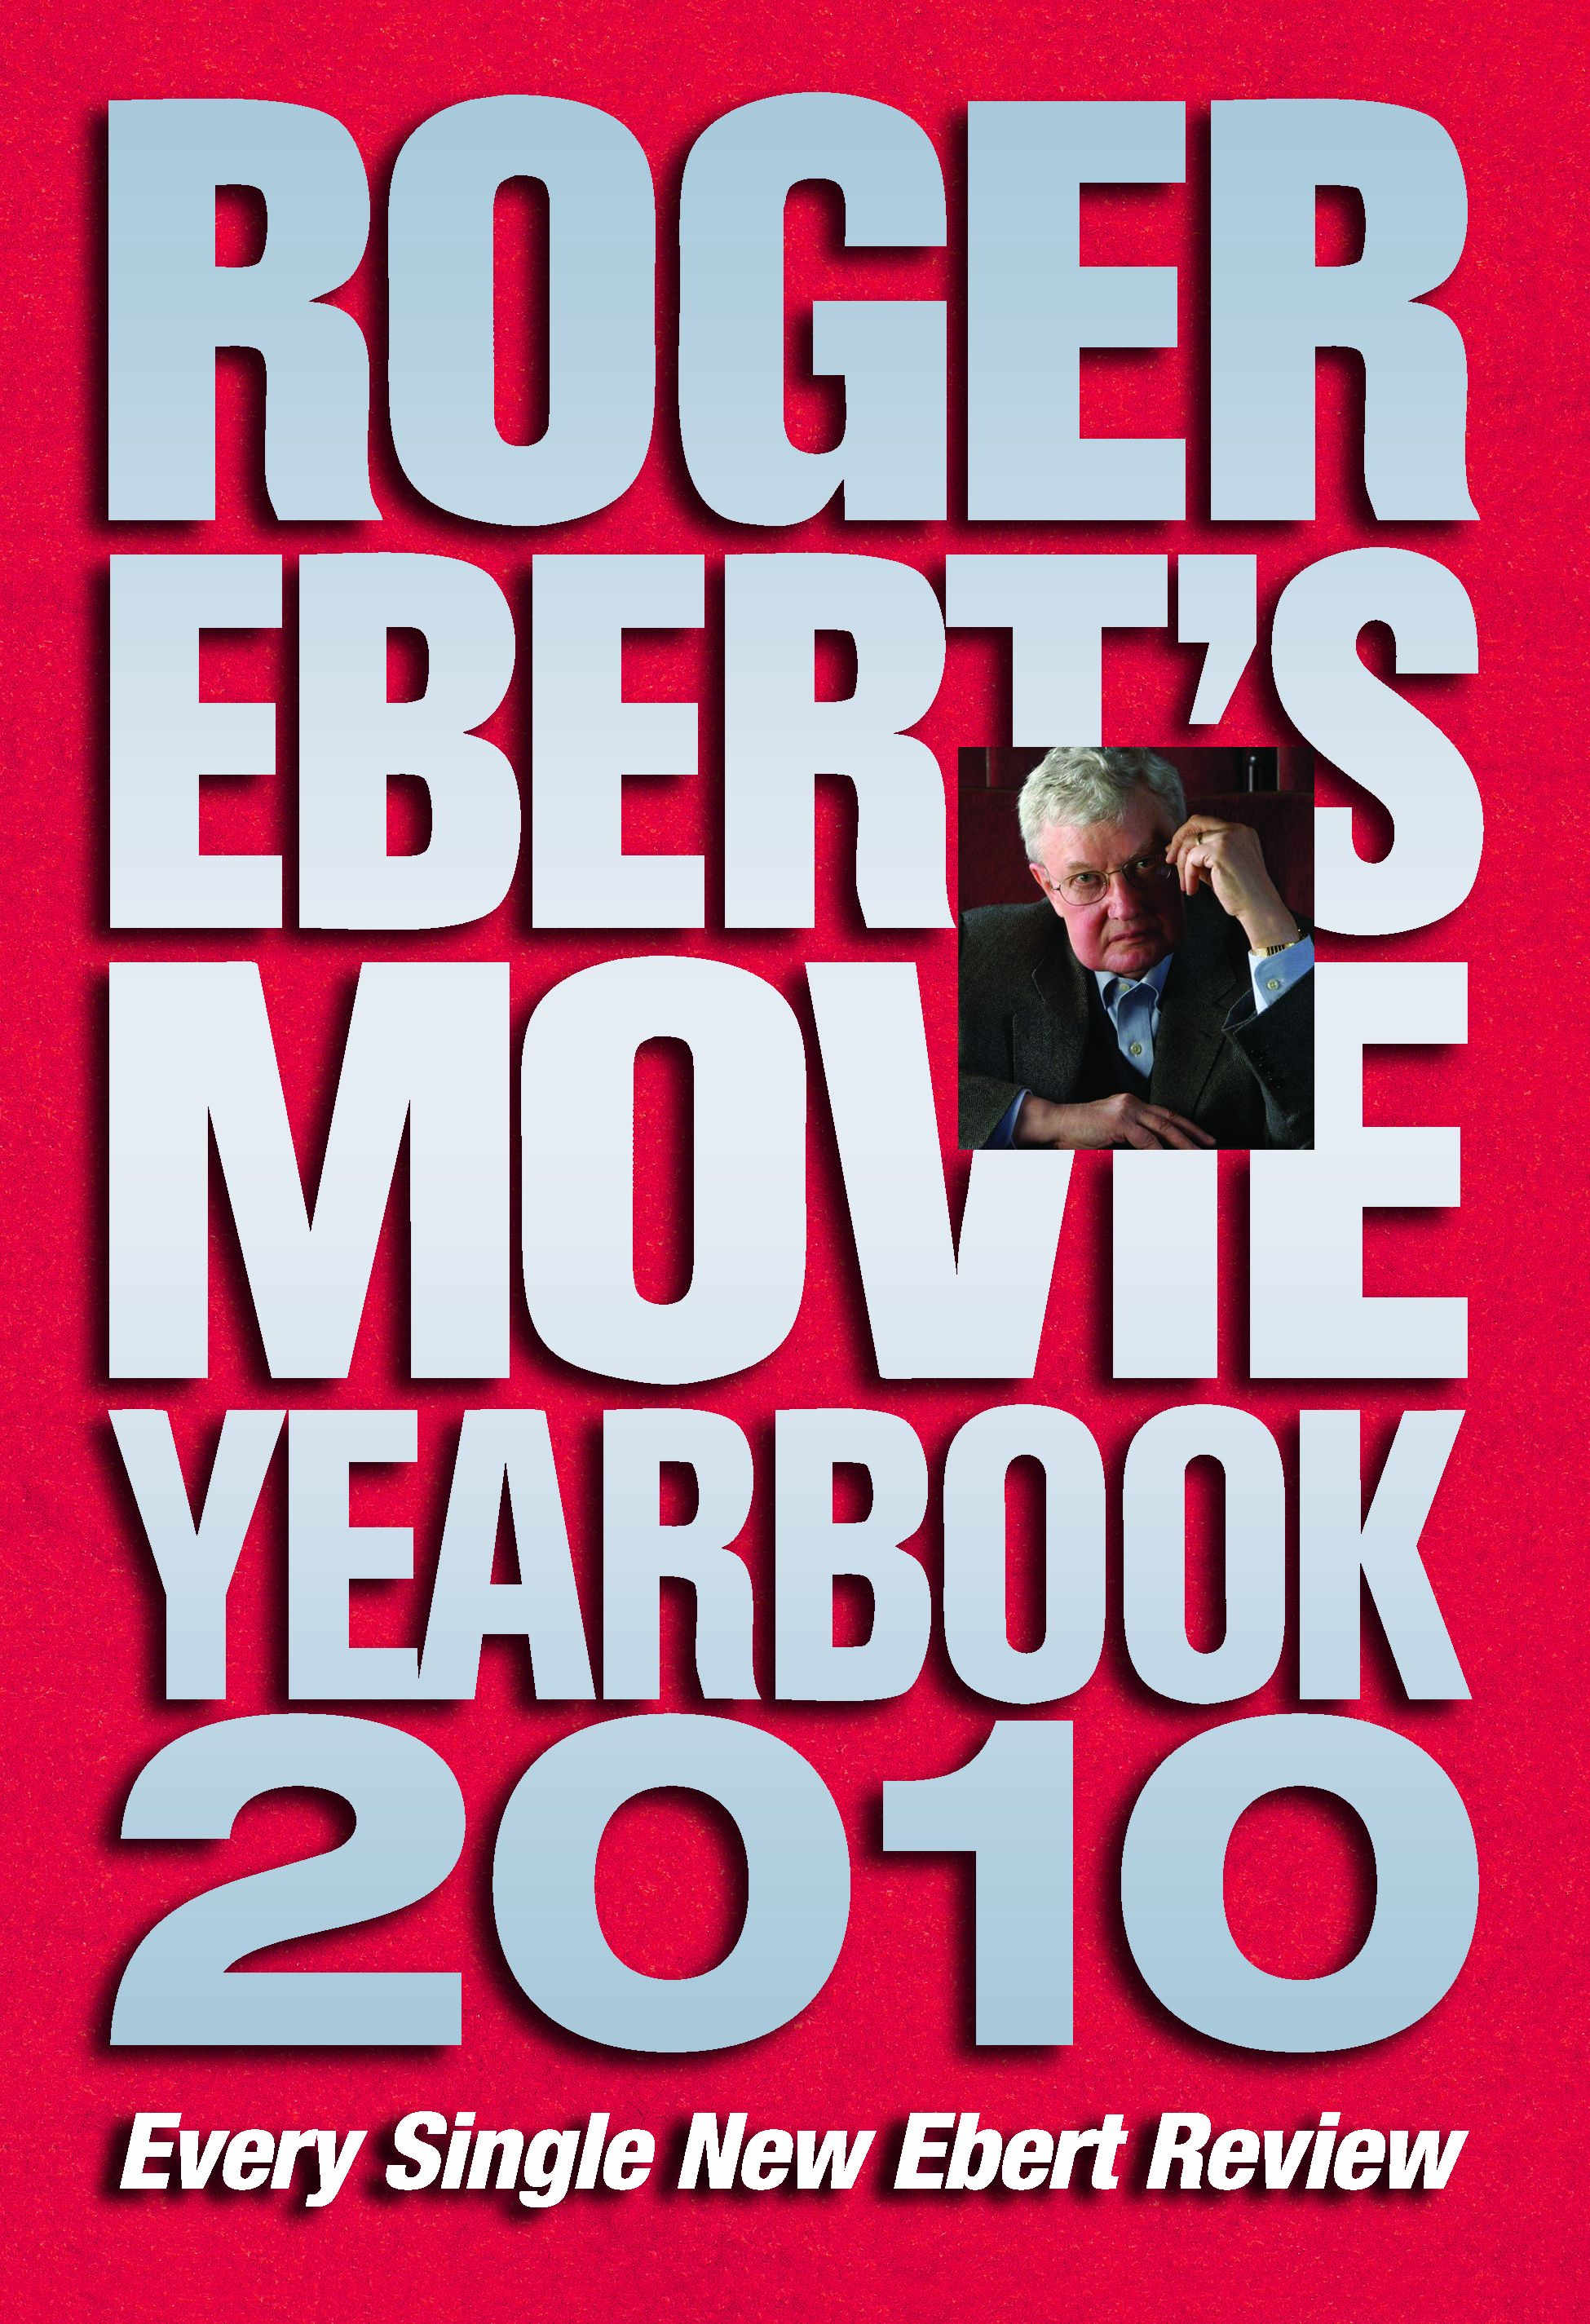 Roger Ebert's Movie Yearbook 2010 By: Roger Ebert